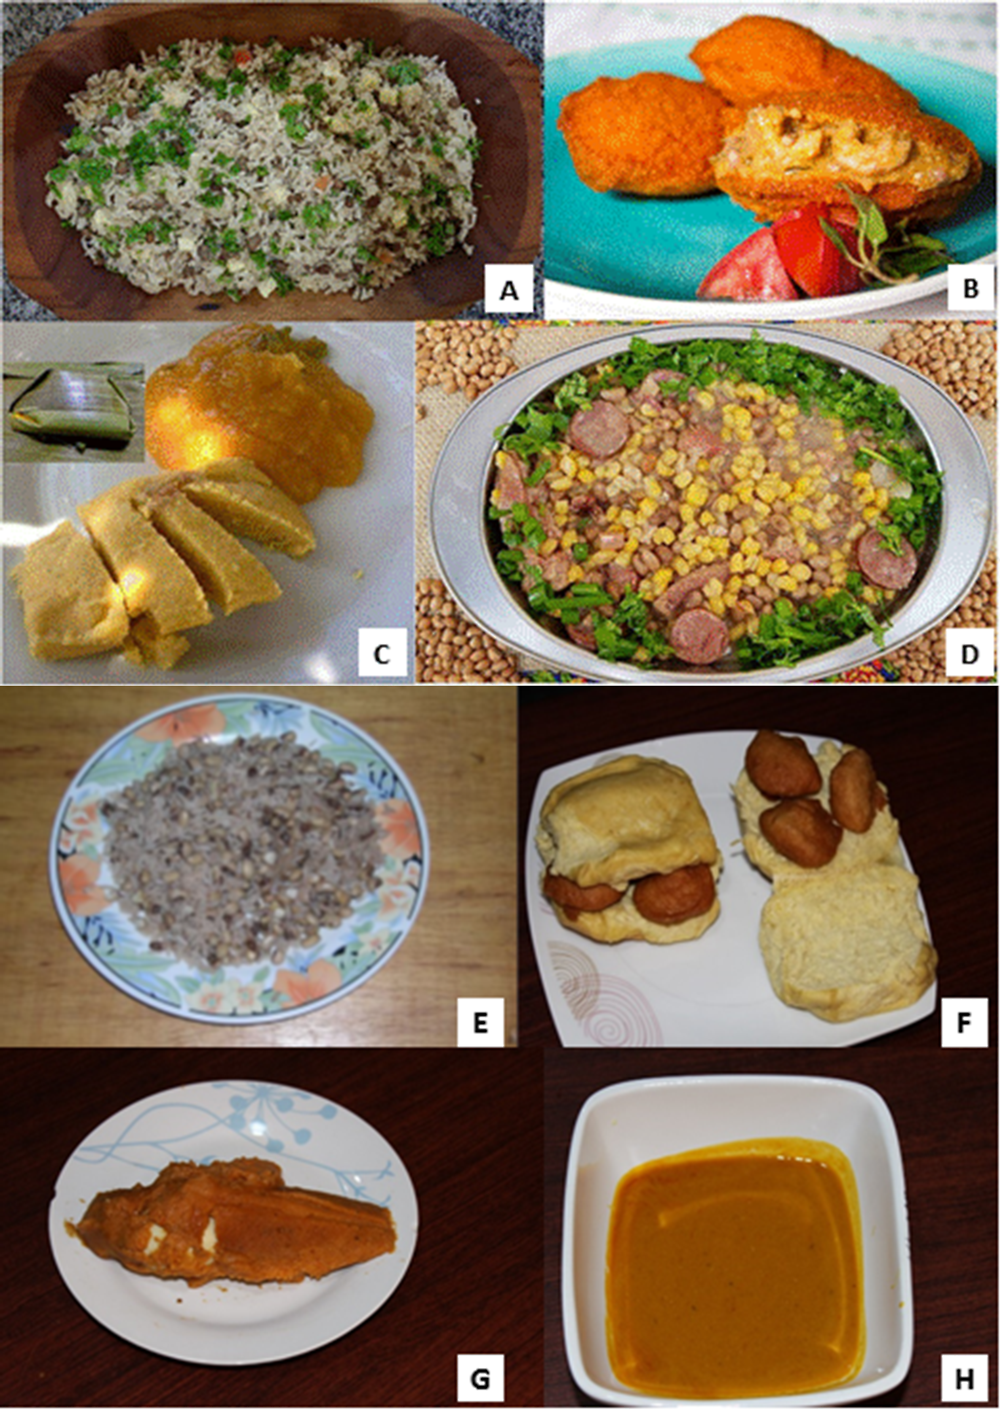 Figure 3.3. Examples of Brazilian (A-D) and Nigerian (E-H) cowpea dishes